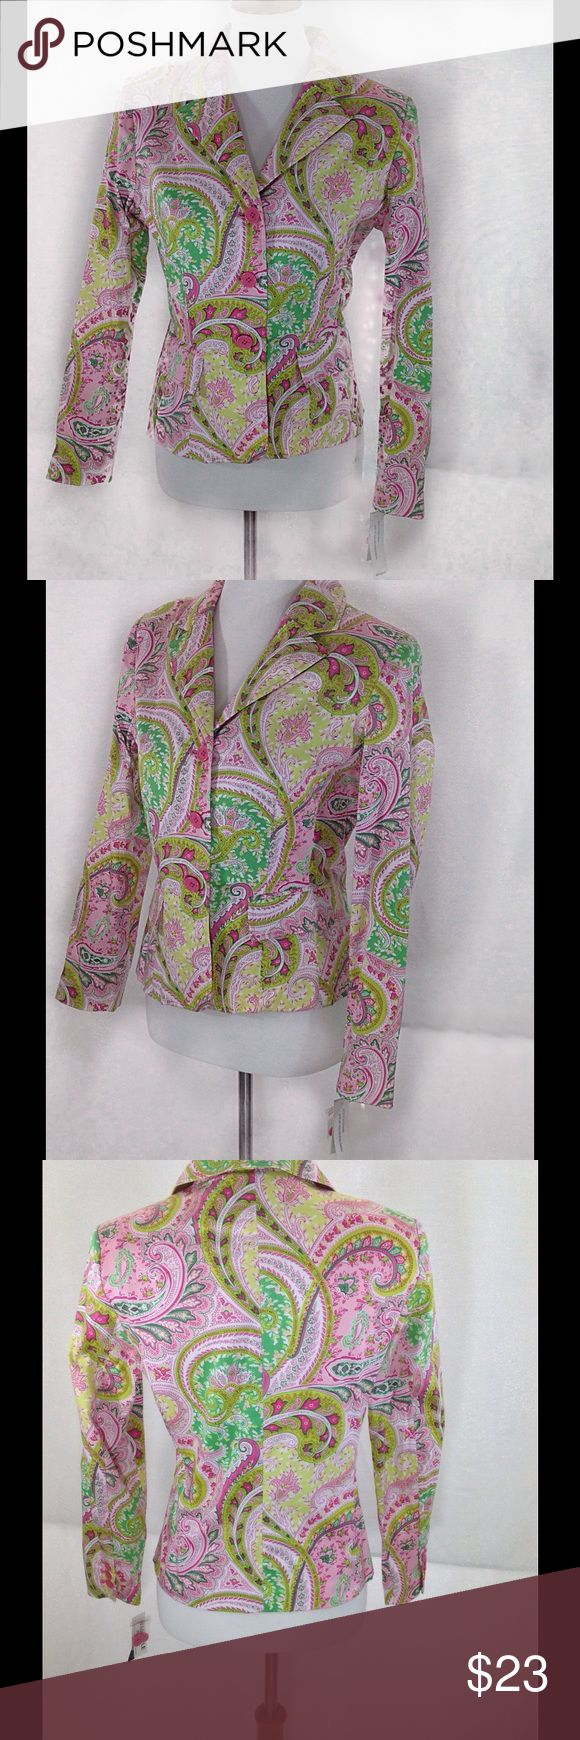 Larry Levine Paisley Blazer Wonderful colors! I love the preppy look of this blazer. See pic 8 for measurements. Measurements are approximate with garment laying flat. Larry Levine Jackets & Coats Blazers